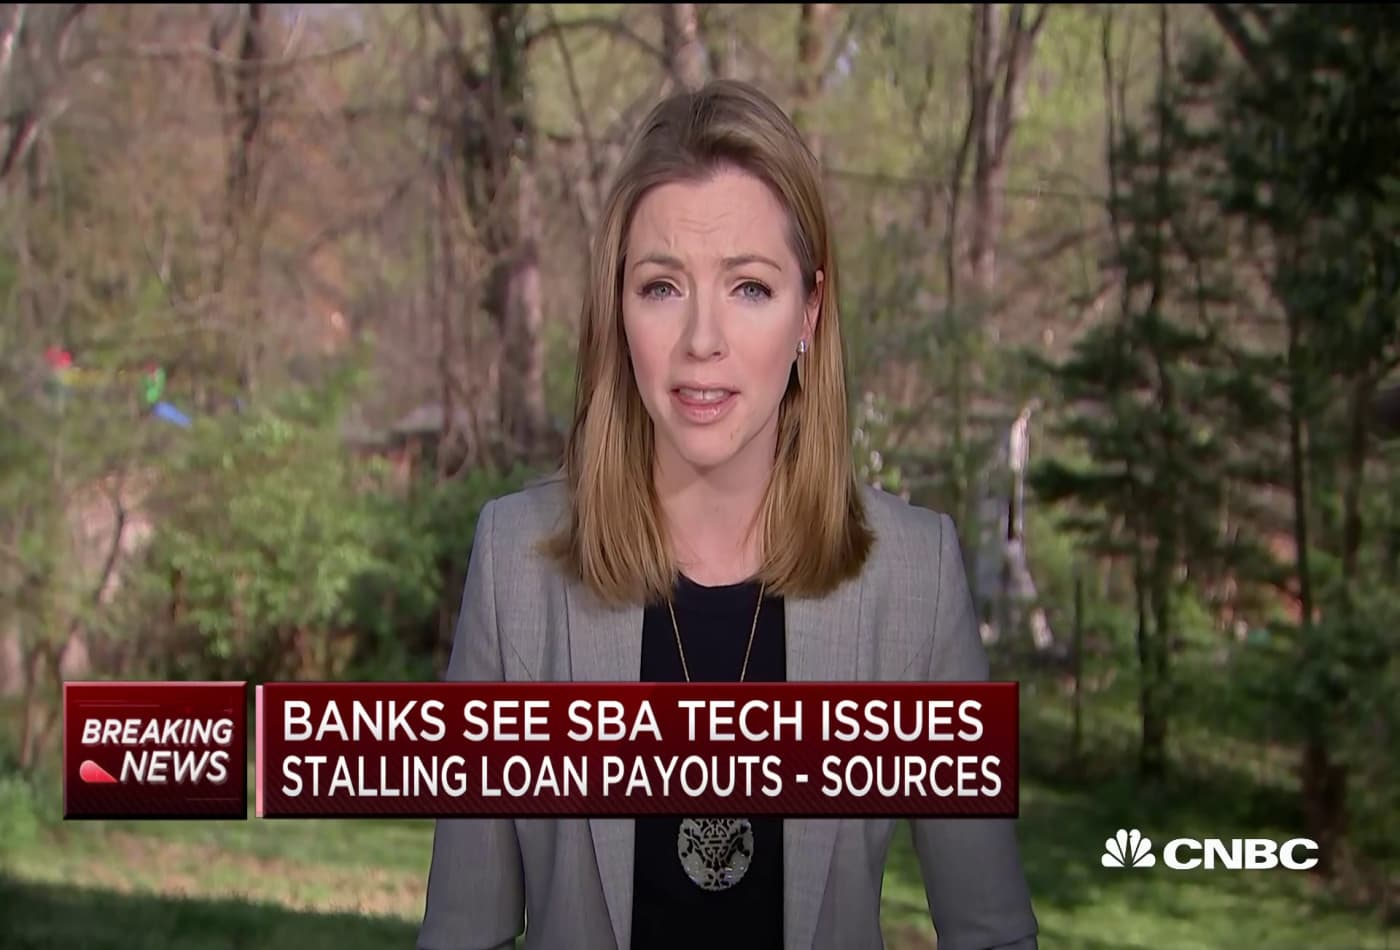 Banks see SBA tech issues stalling loan payouts